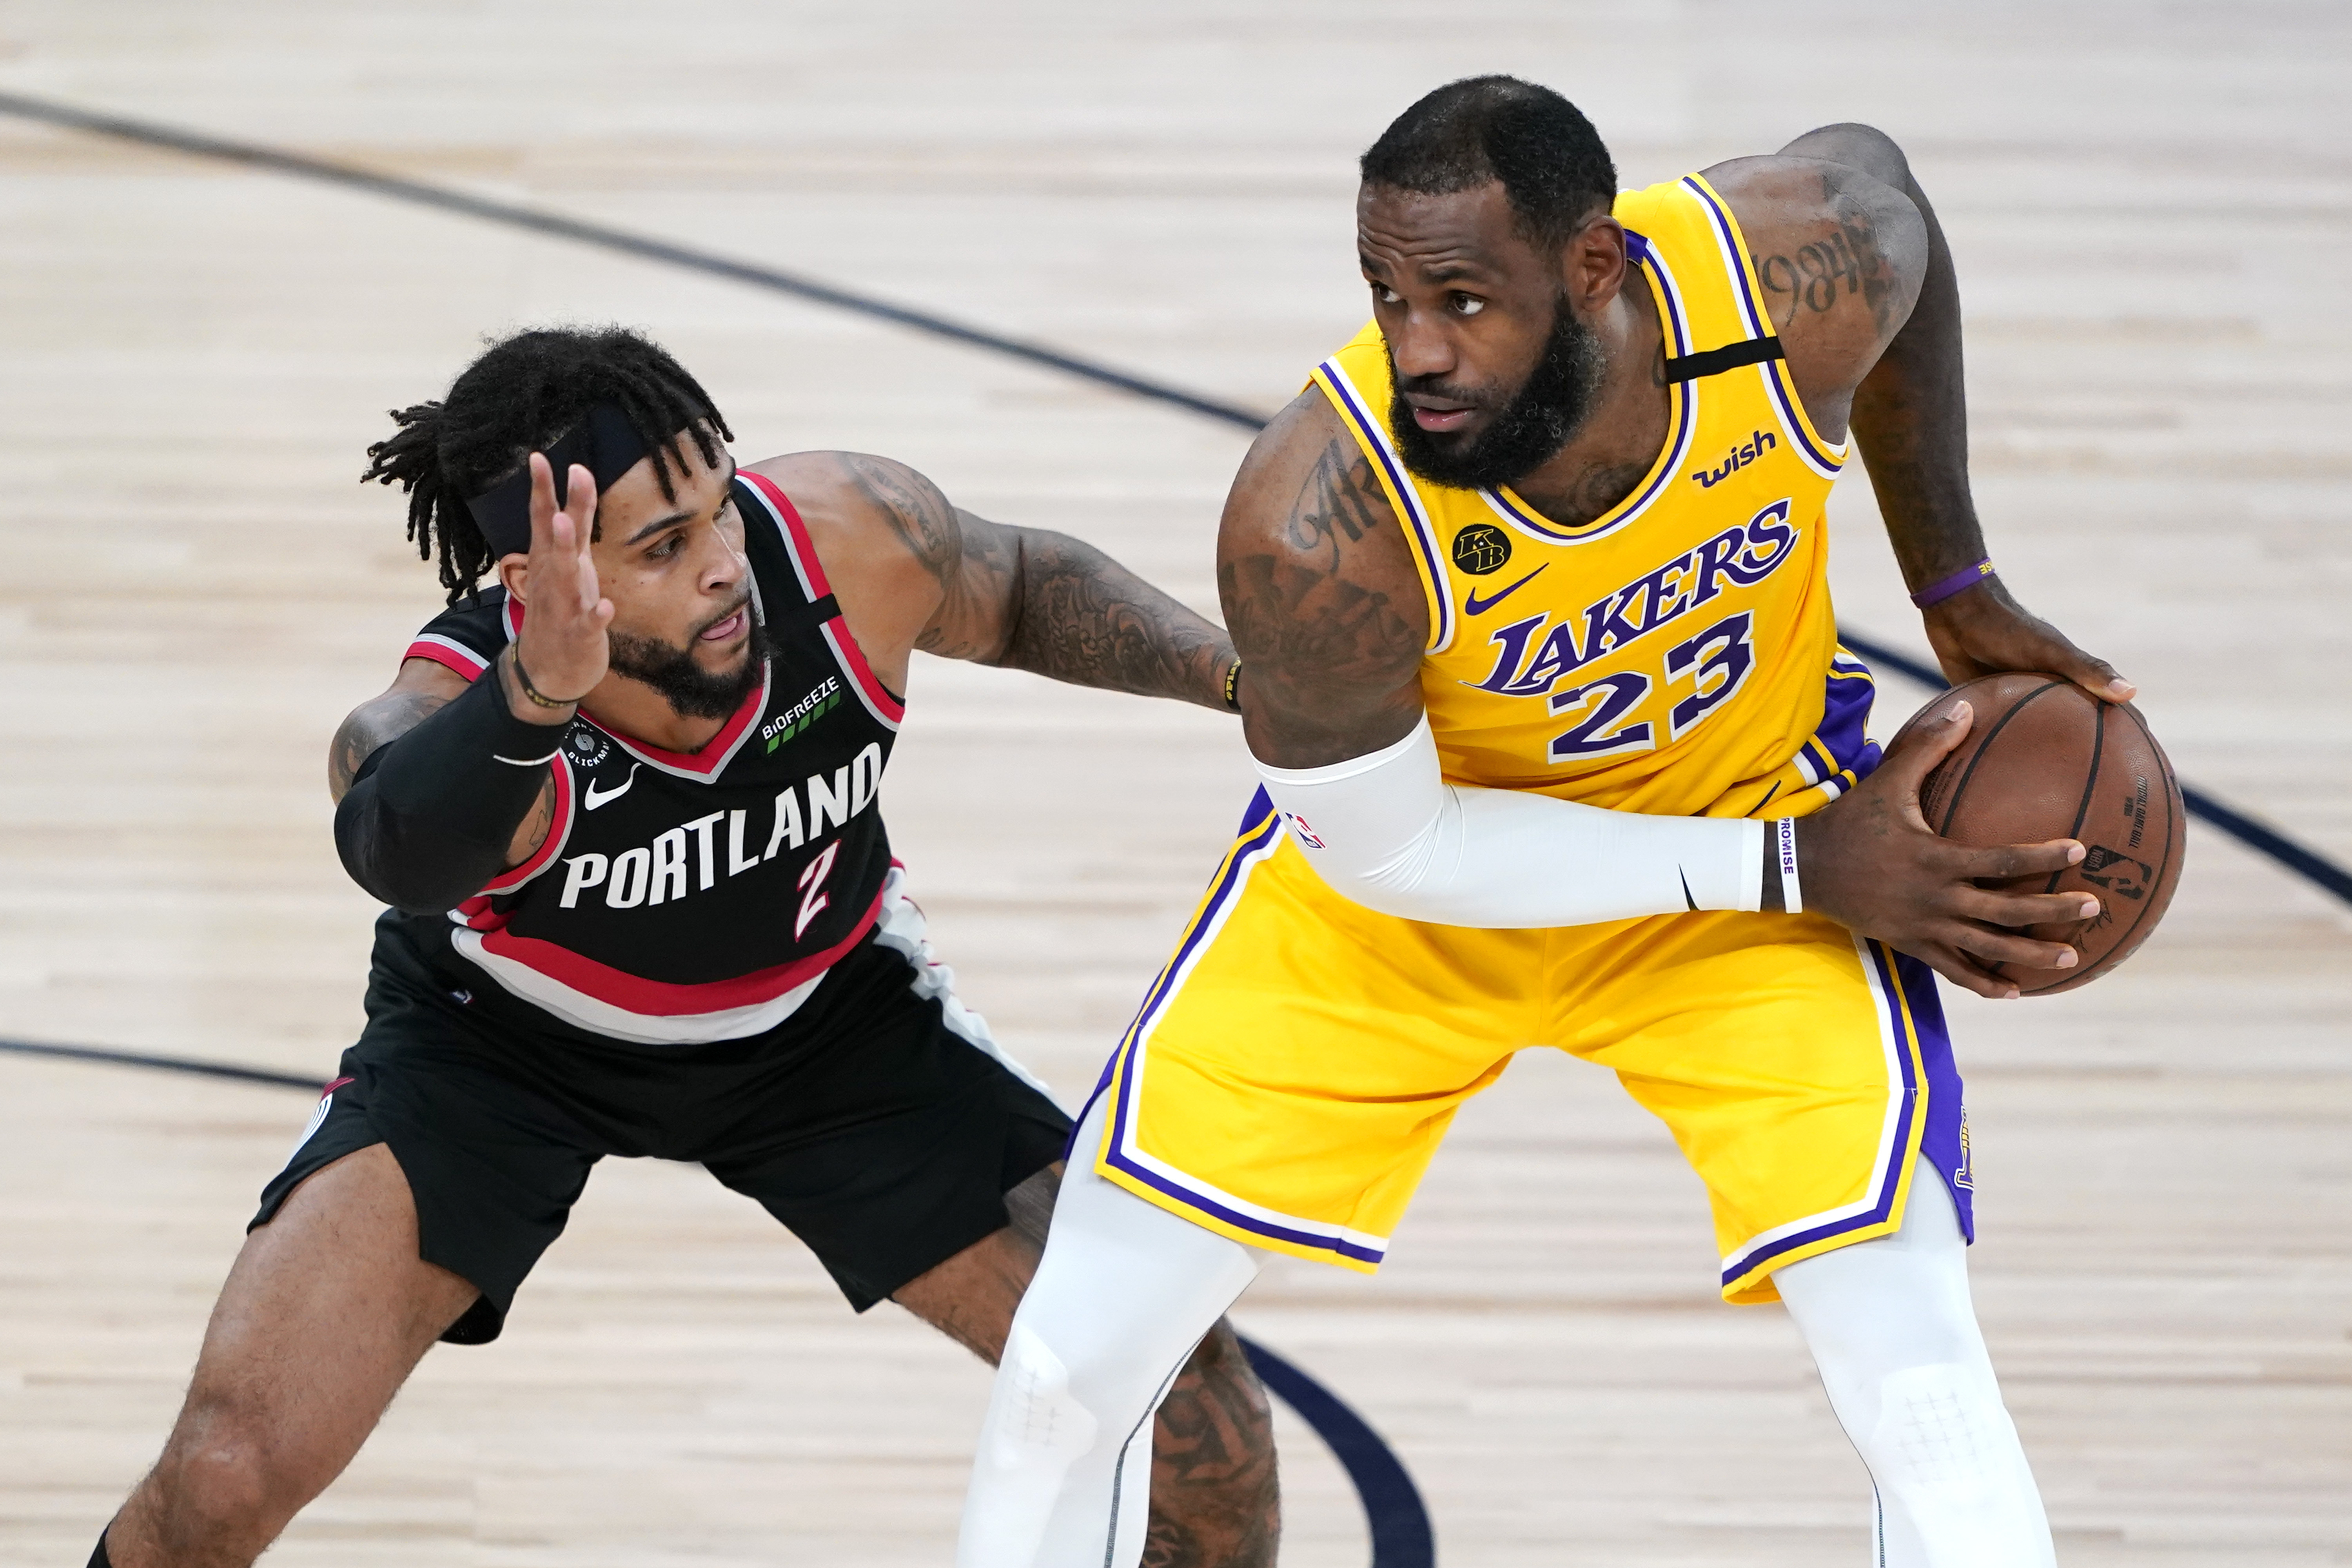 Lakers Vs Rockets Live Stream 9 4 How To Watch Lebron James Nba Playoffs Online Tv Time Al Com